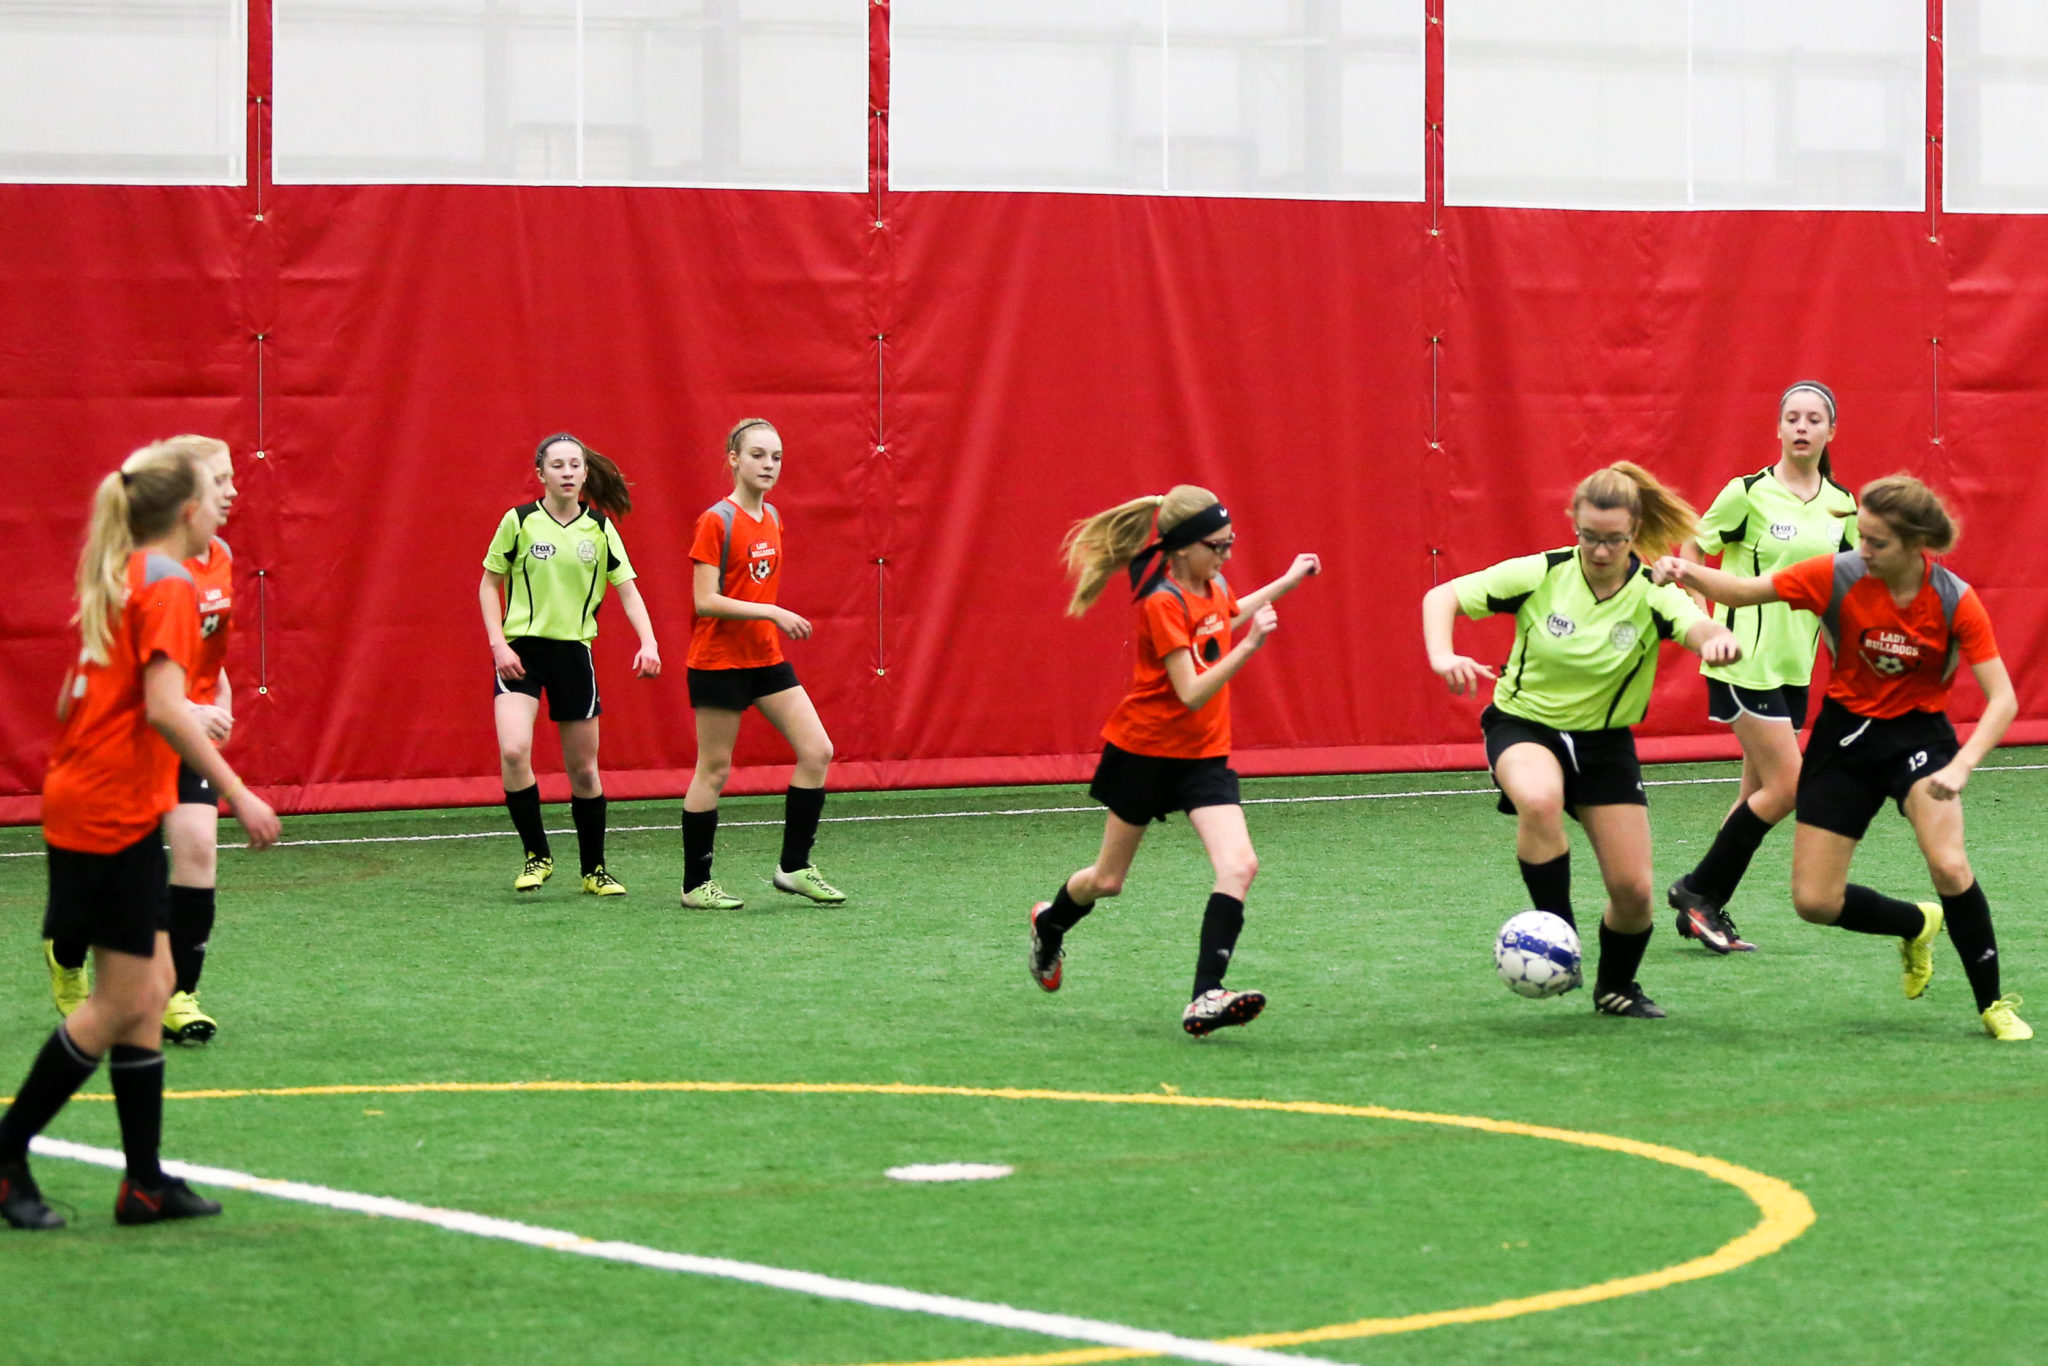 Youth Soccer Coaching: It's not all about winning.